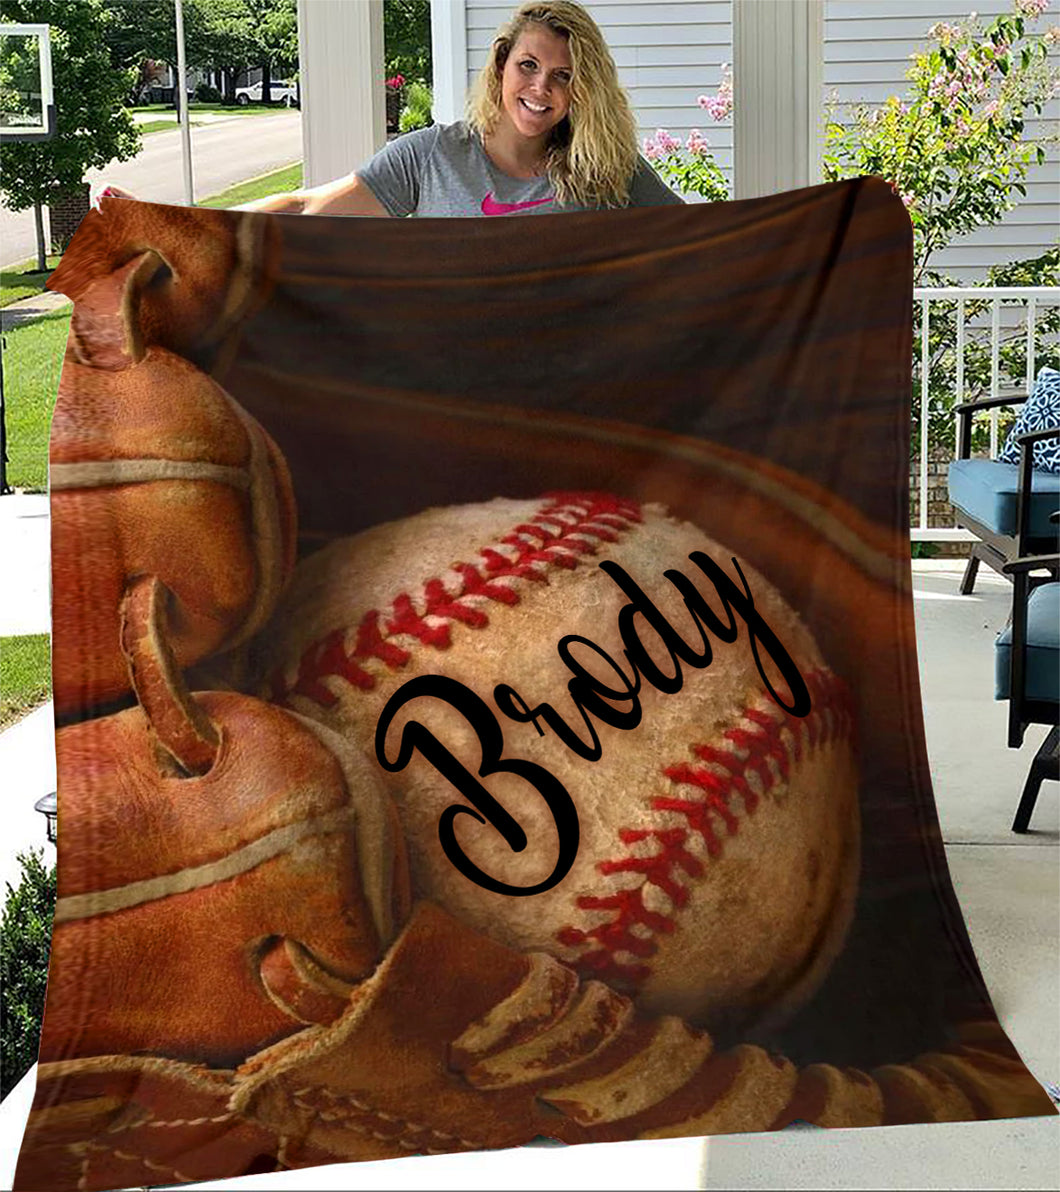 Custom Blankets Baseball Glove Personalized Name Blanket - Fleece Blanket